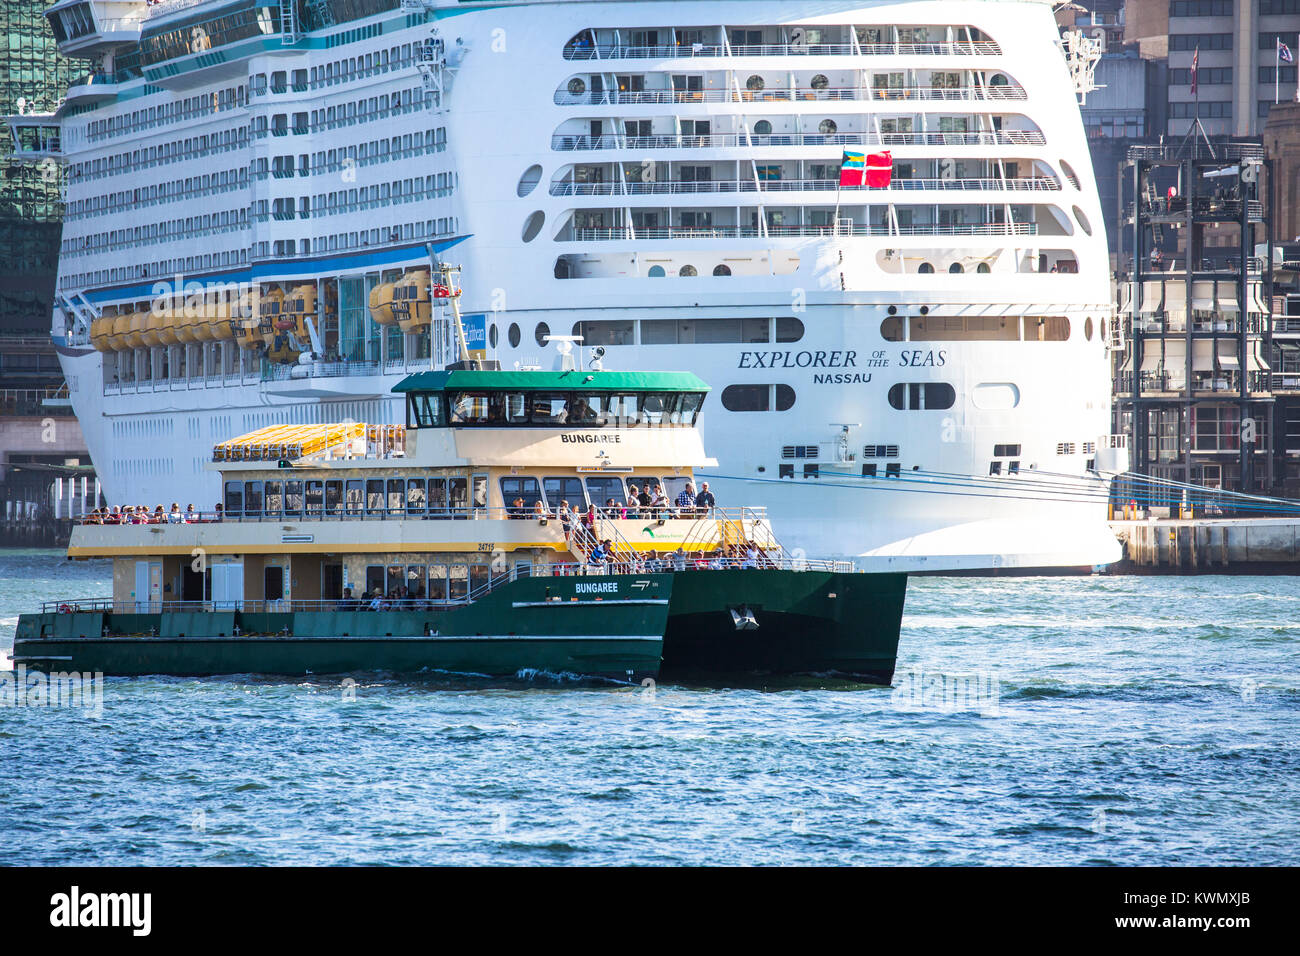 Sydney ferry passes by cruise ship Explorer of the Seas moored in Sydney harbour,Sydney,Australia - Stock Image